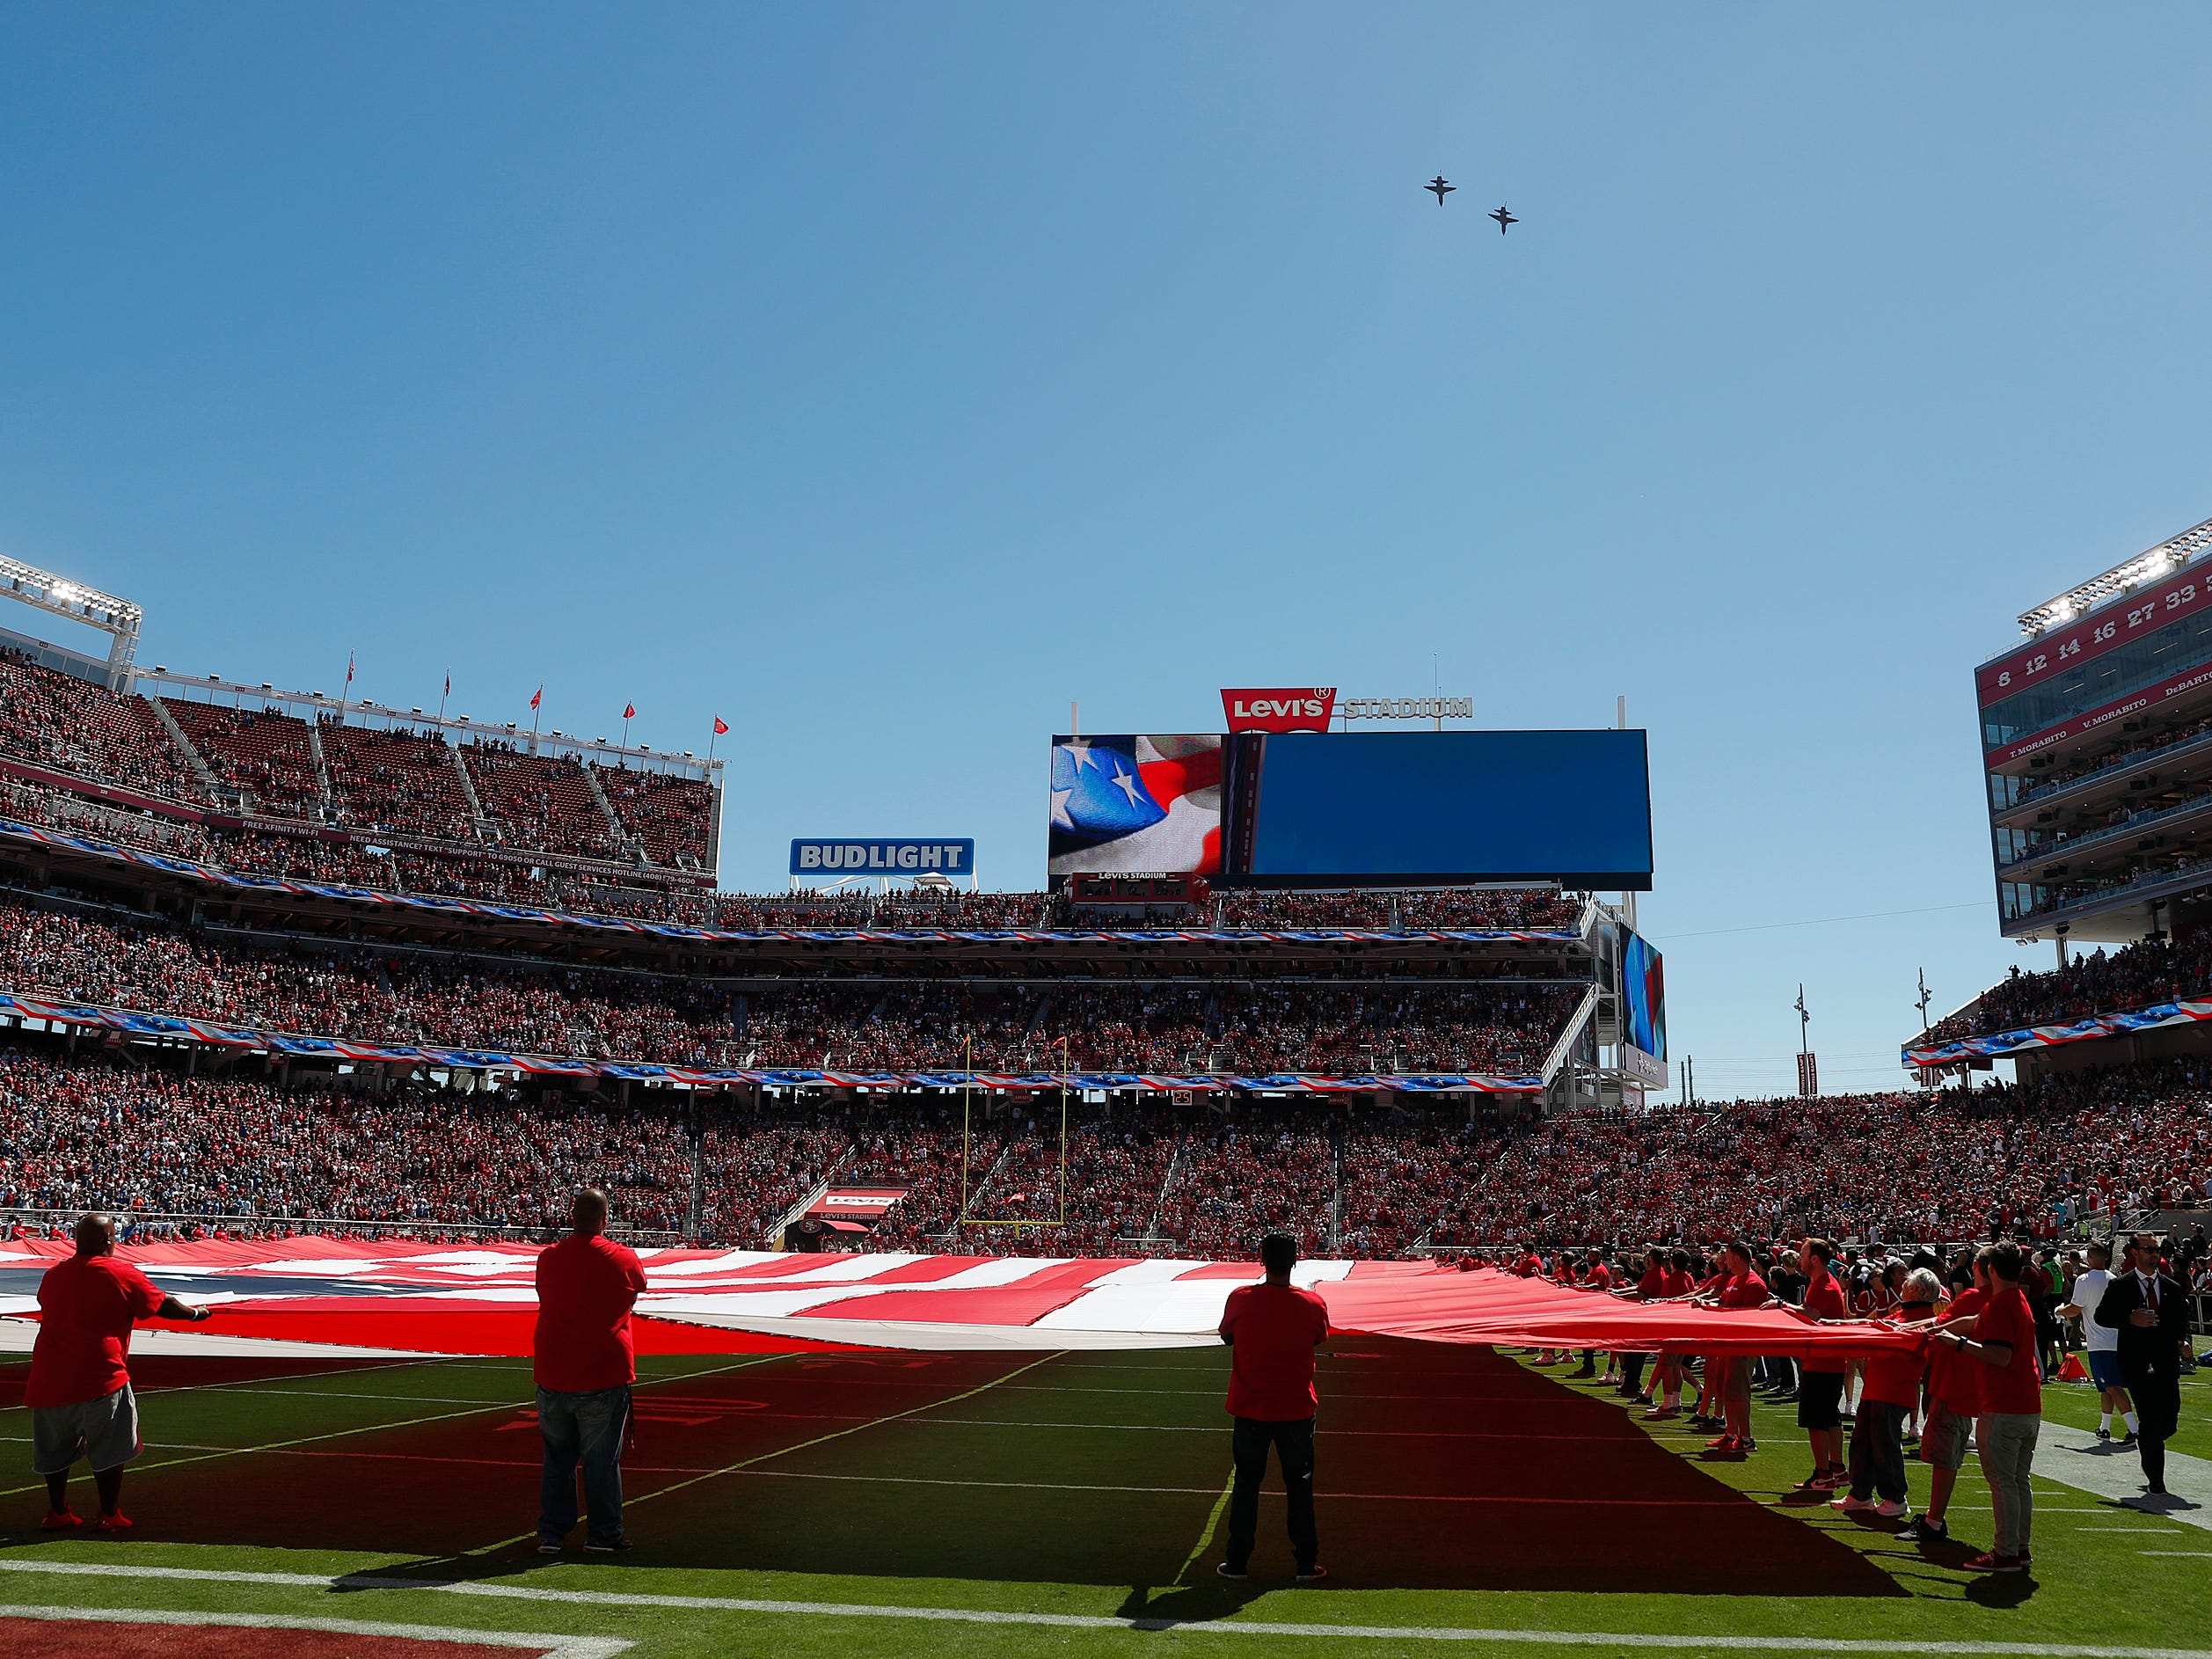 A pair of jets do a flyover above Levi's Stadium before the start of an NFL football game.